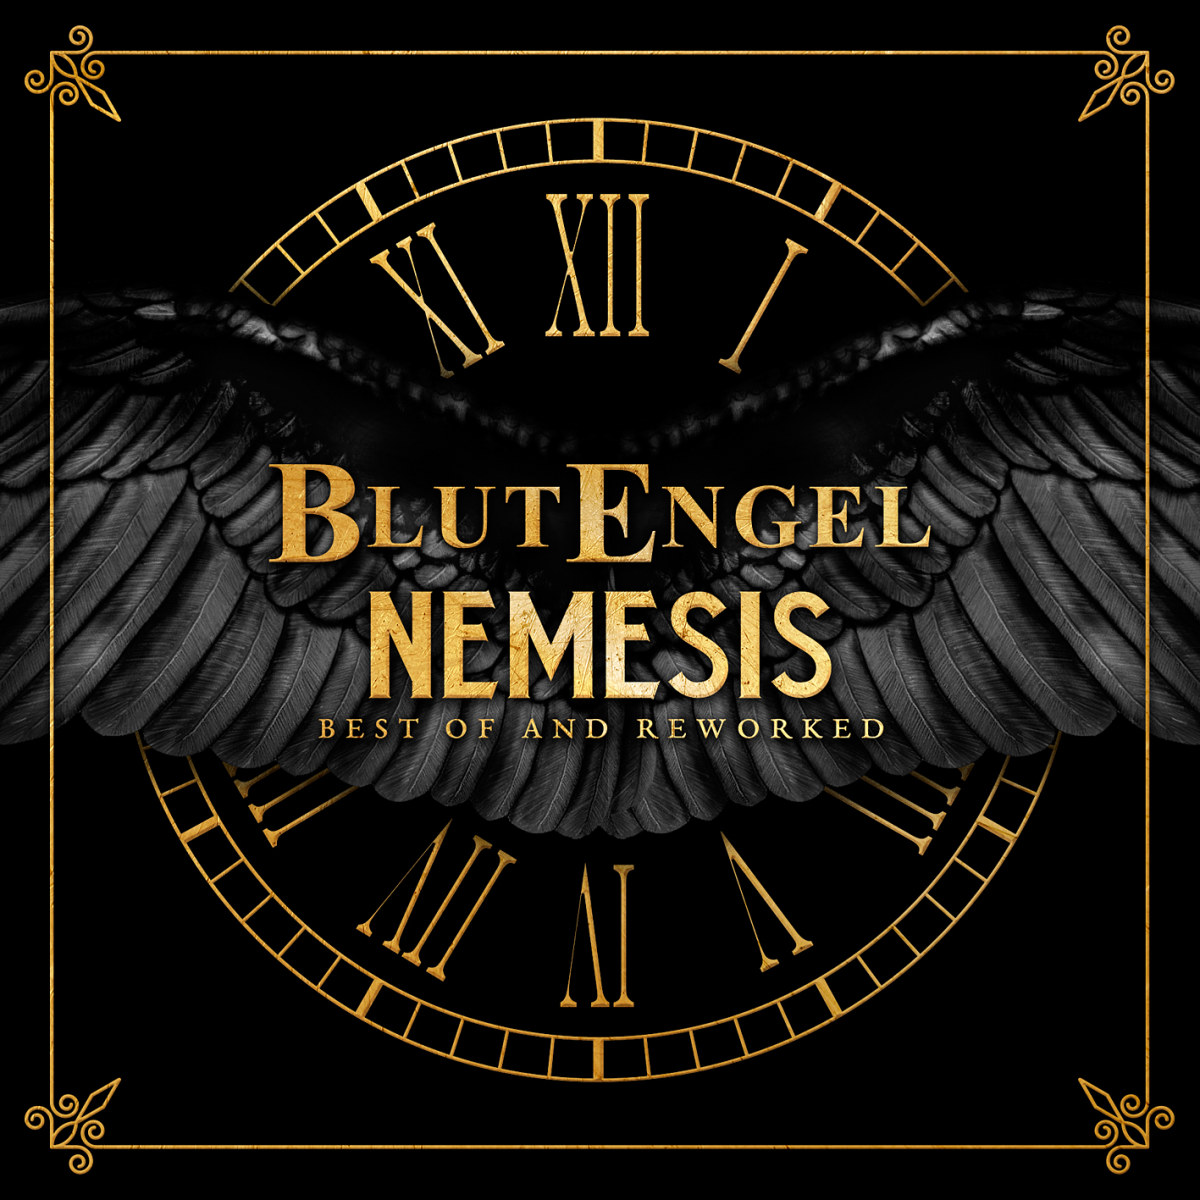 BLUTENGEL Nemesis: The Best Of & Reworked (Deluxe Edition) 2CD 2016 (VÖ 26.02)